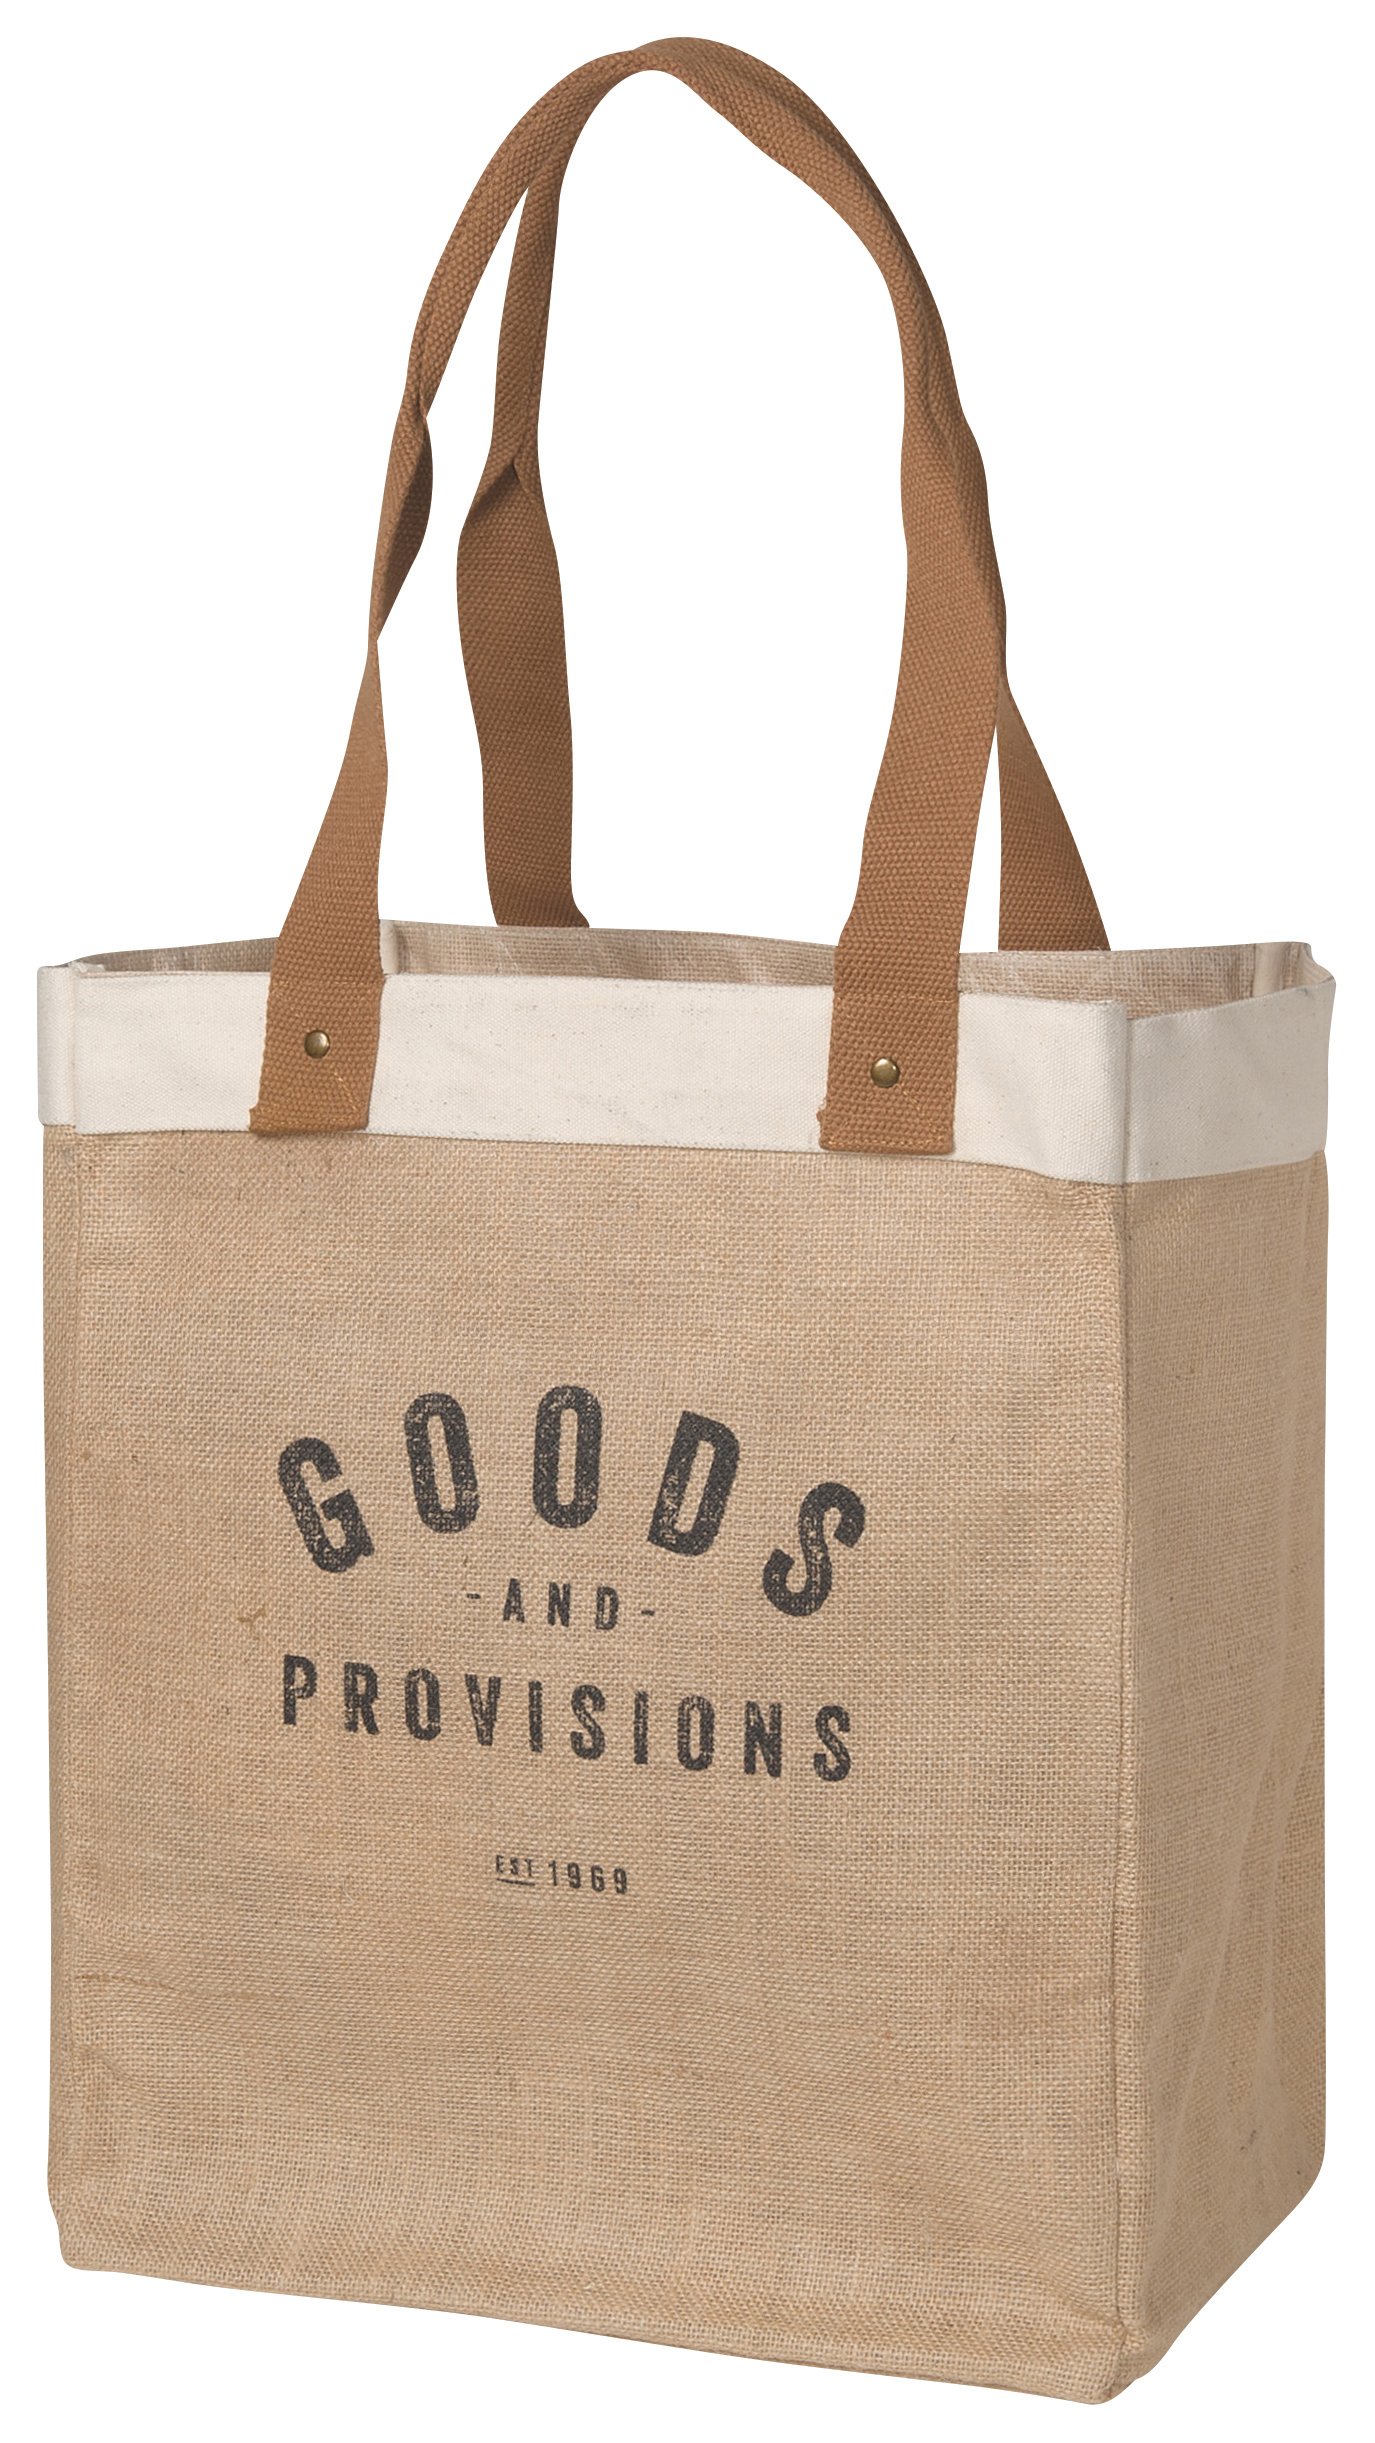 Market Tote Bag - Goods & Provisions